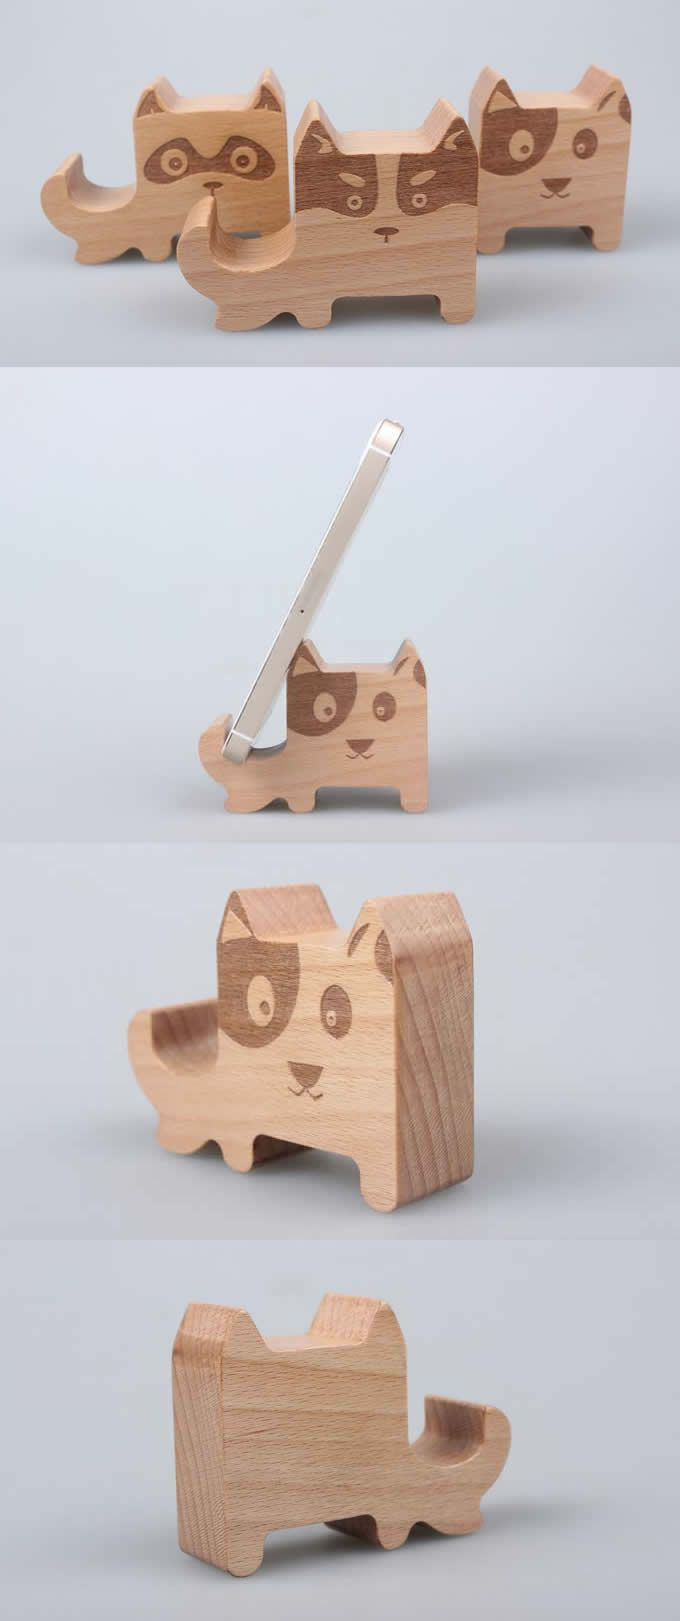 Wooden Dog Shaped Mobile Display Stand